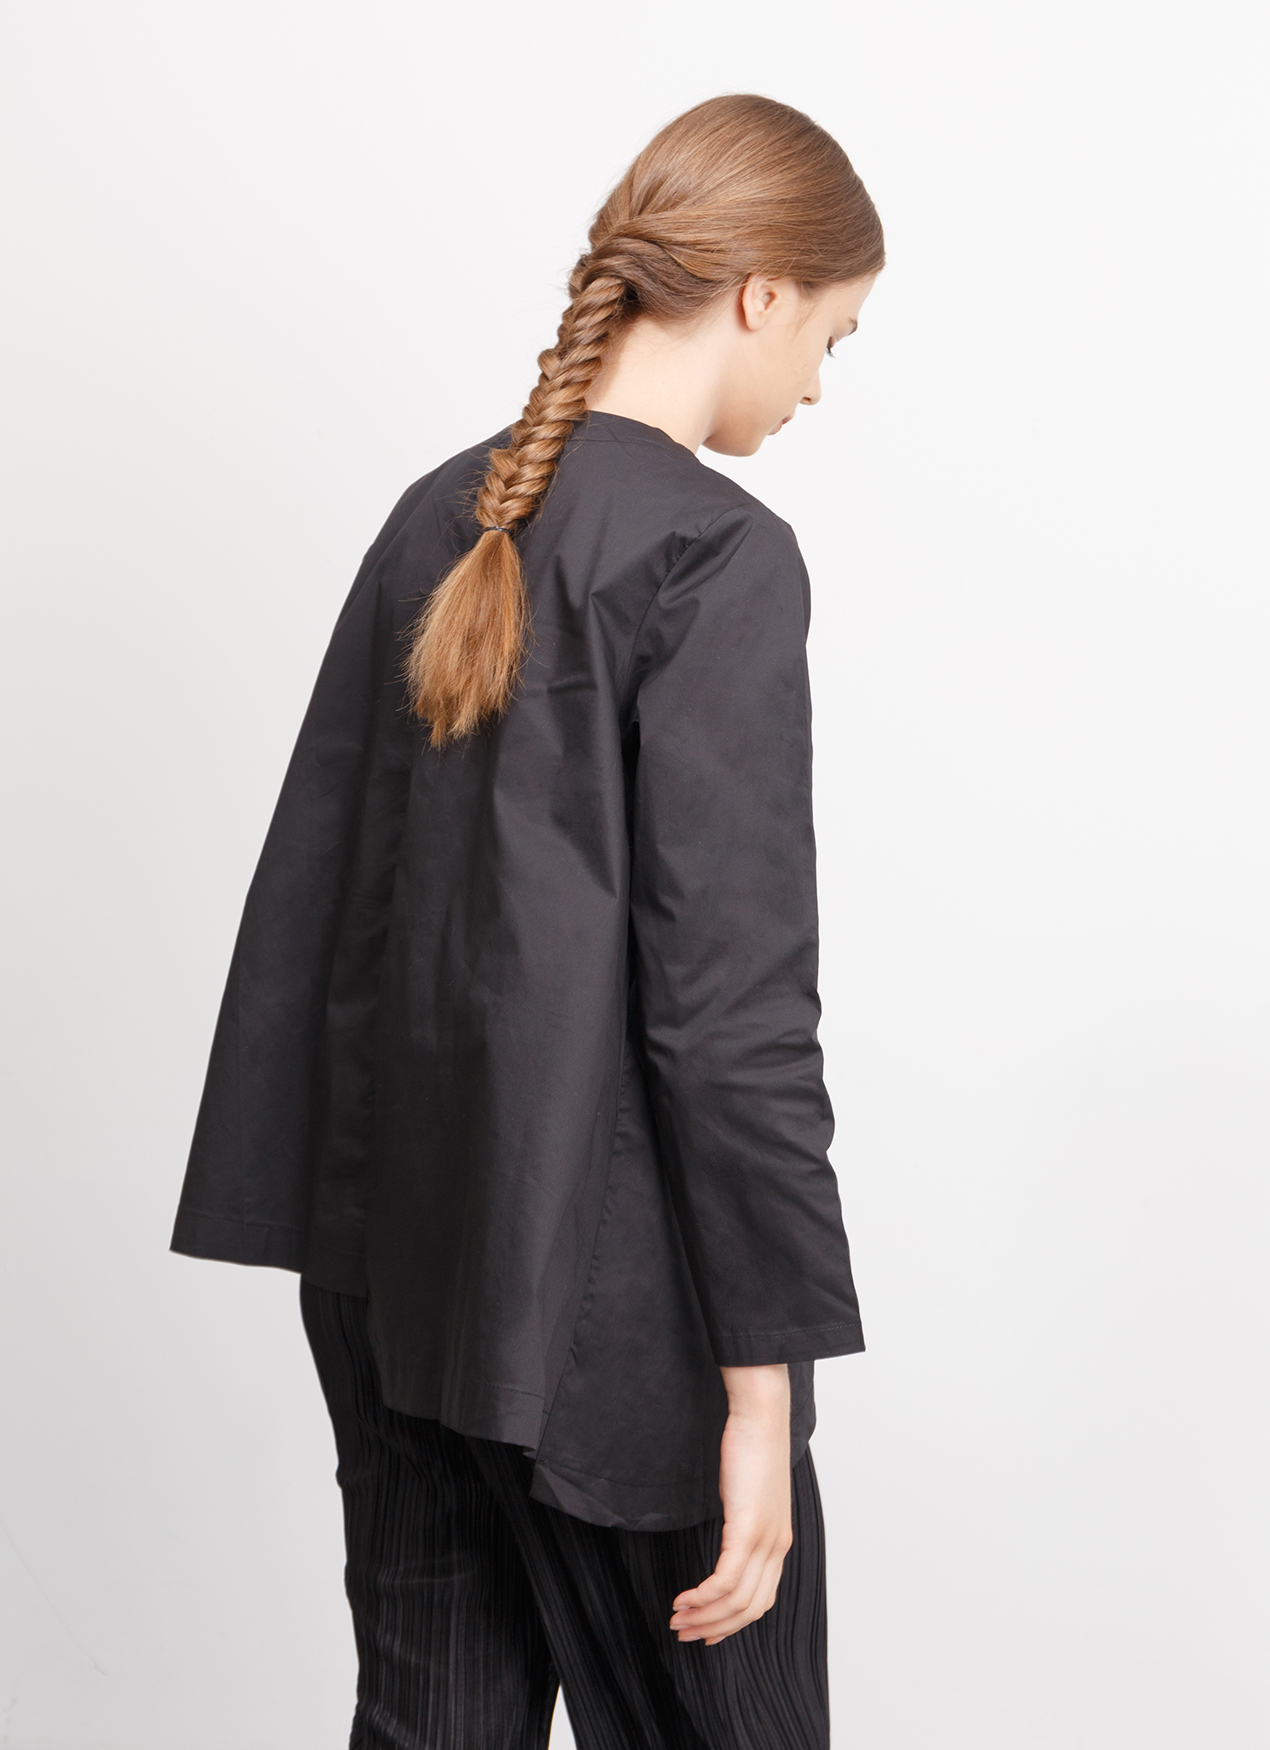 BOWN Candace Top - Black